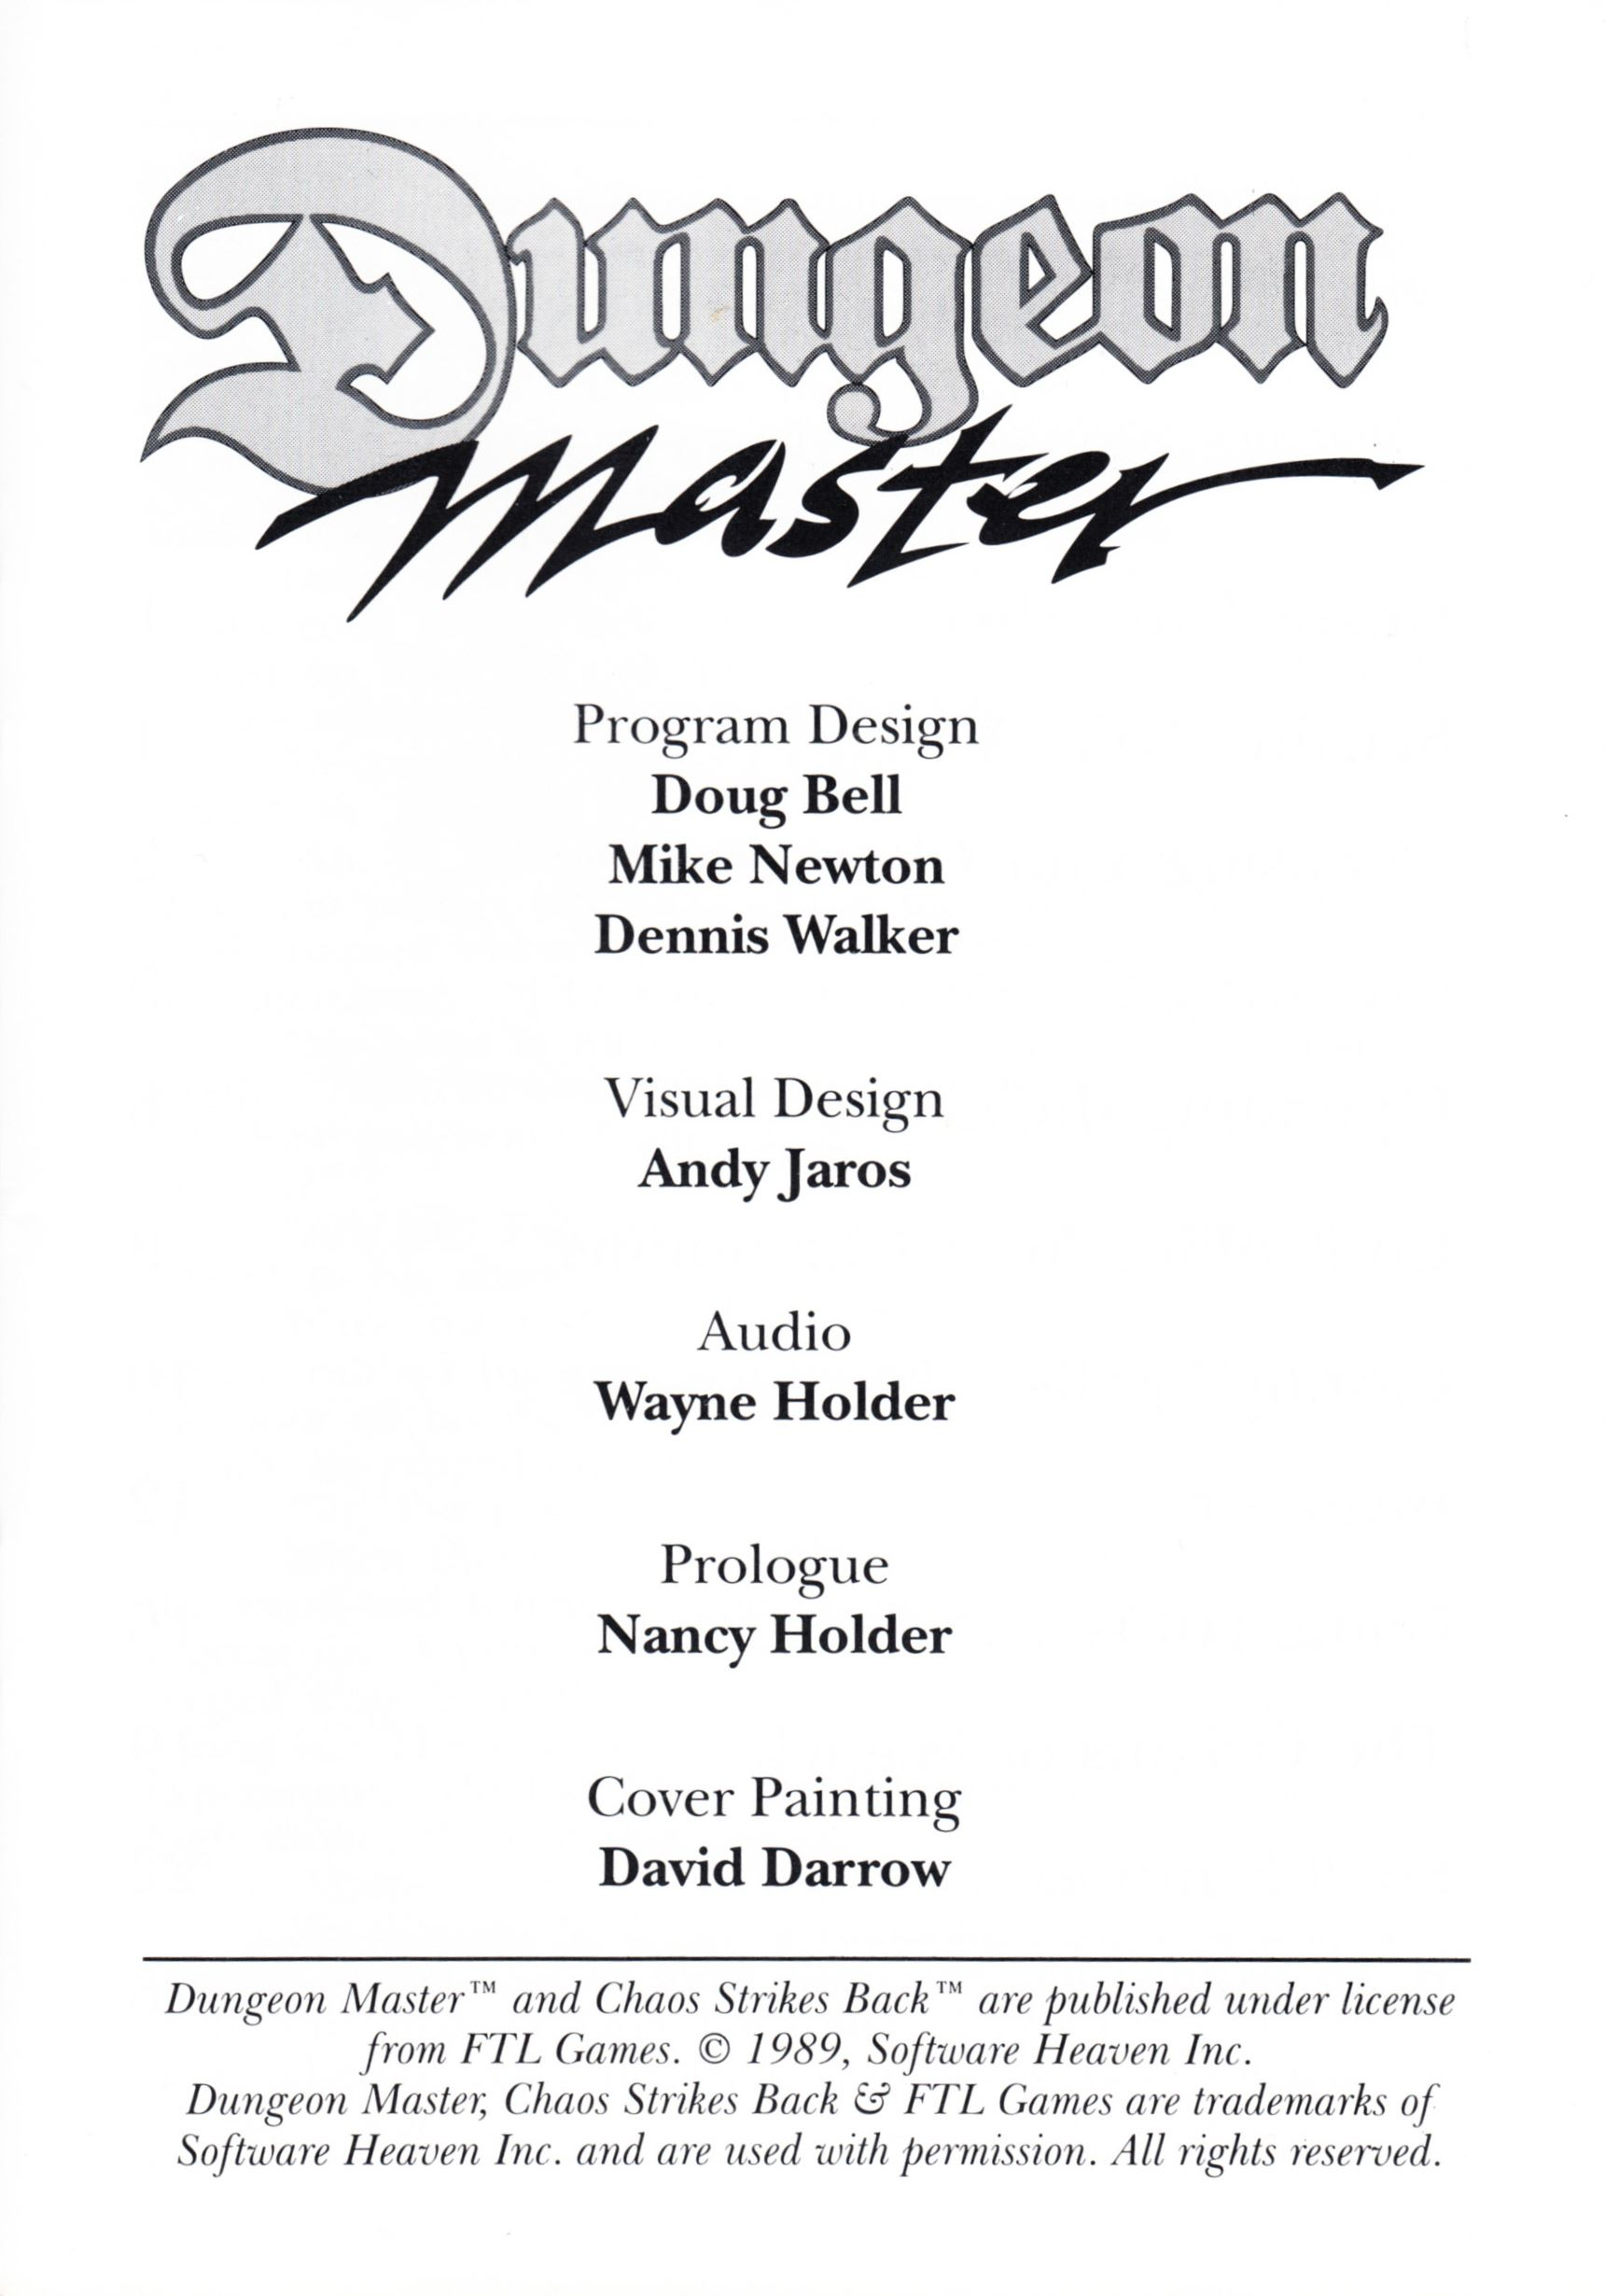 Game - Dungeon Master - UK - PC - Psygnosis - Manual - Page 003 - Scan